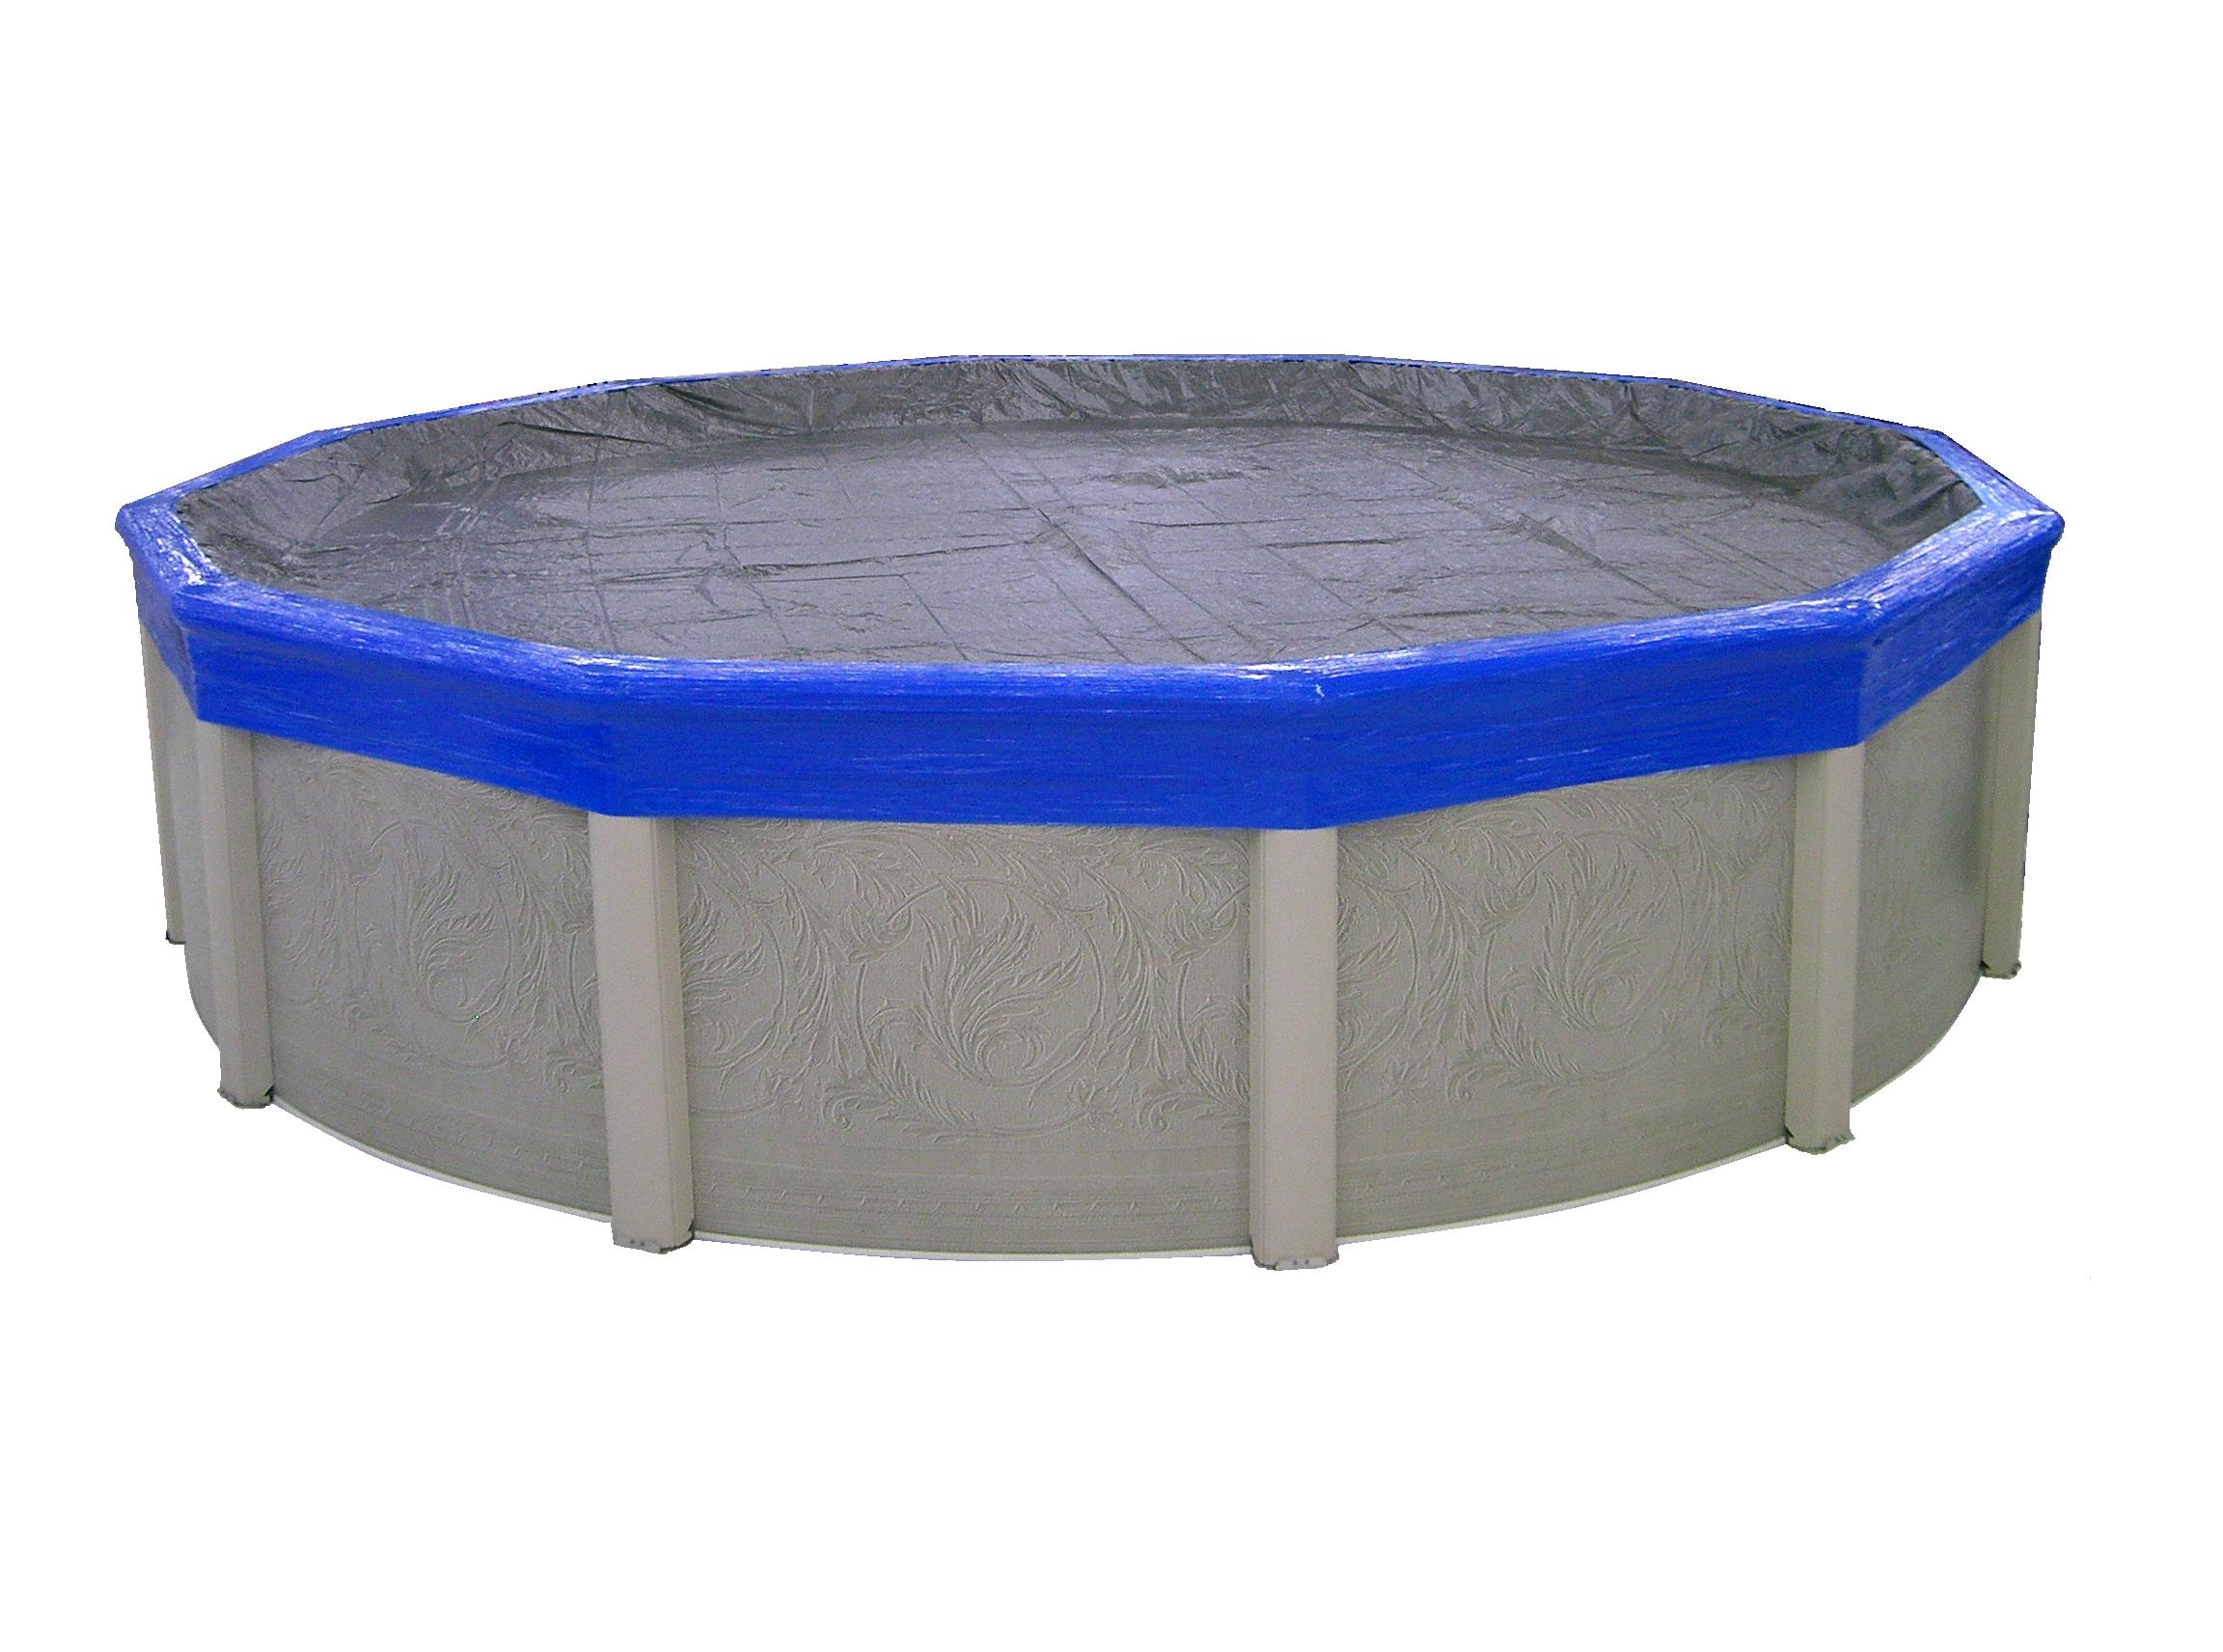 Free winter cover seal swimming pool discounters - Swimming pool discounters ...